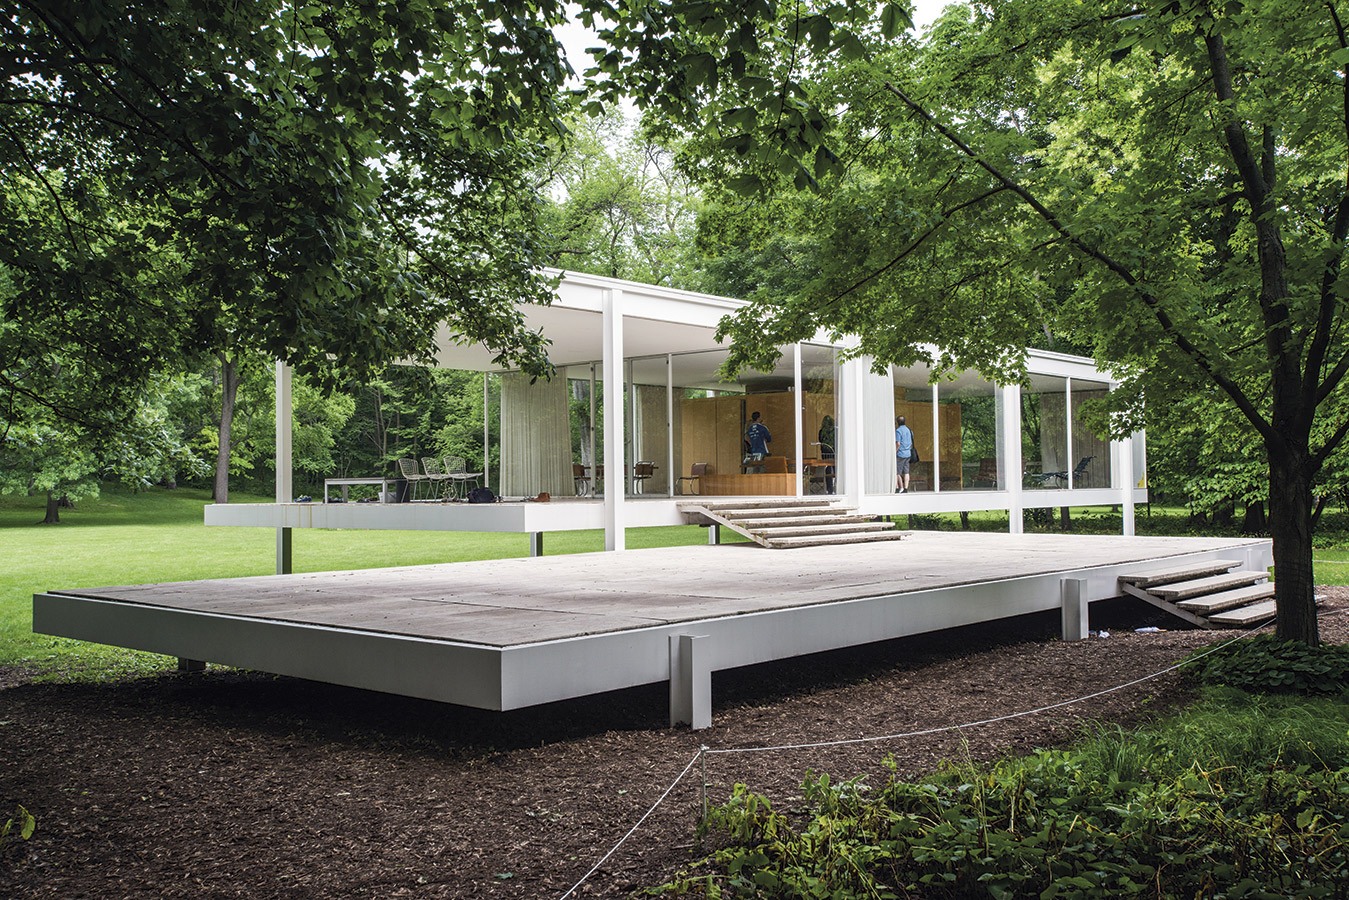 Chicago-web-Architecture Mies Farnsworth House Plano 0058. [14] Chicago, my kind of town